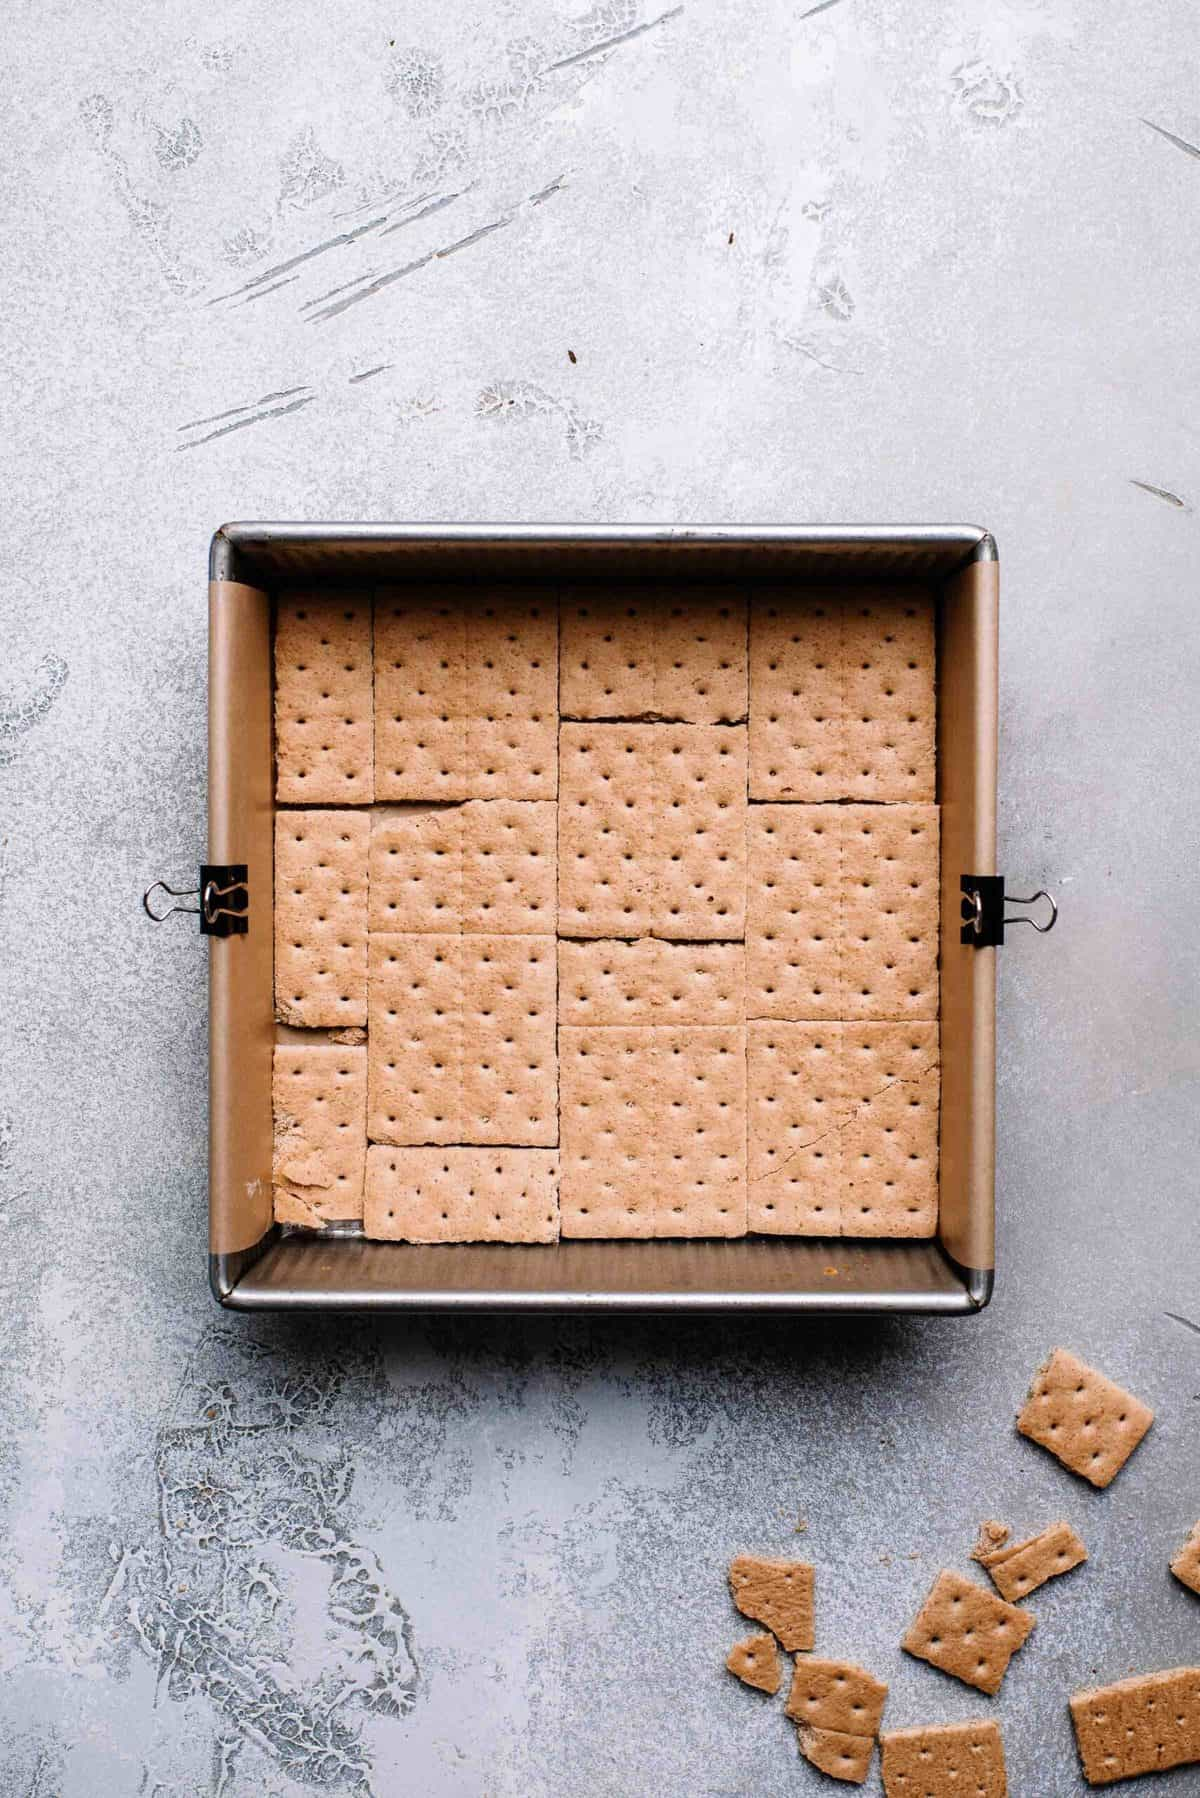 Graham crackers arranged in a baking pan.